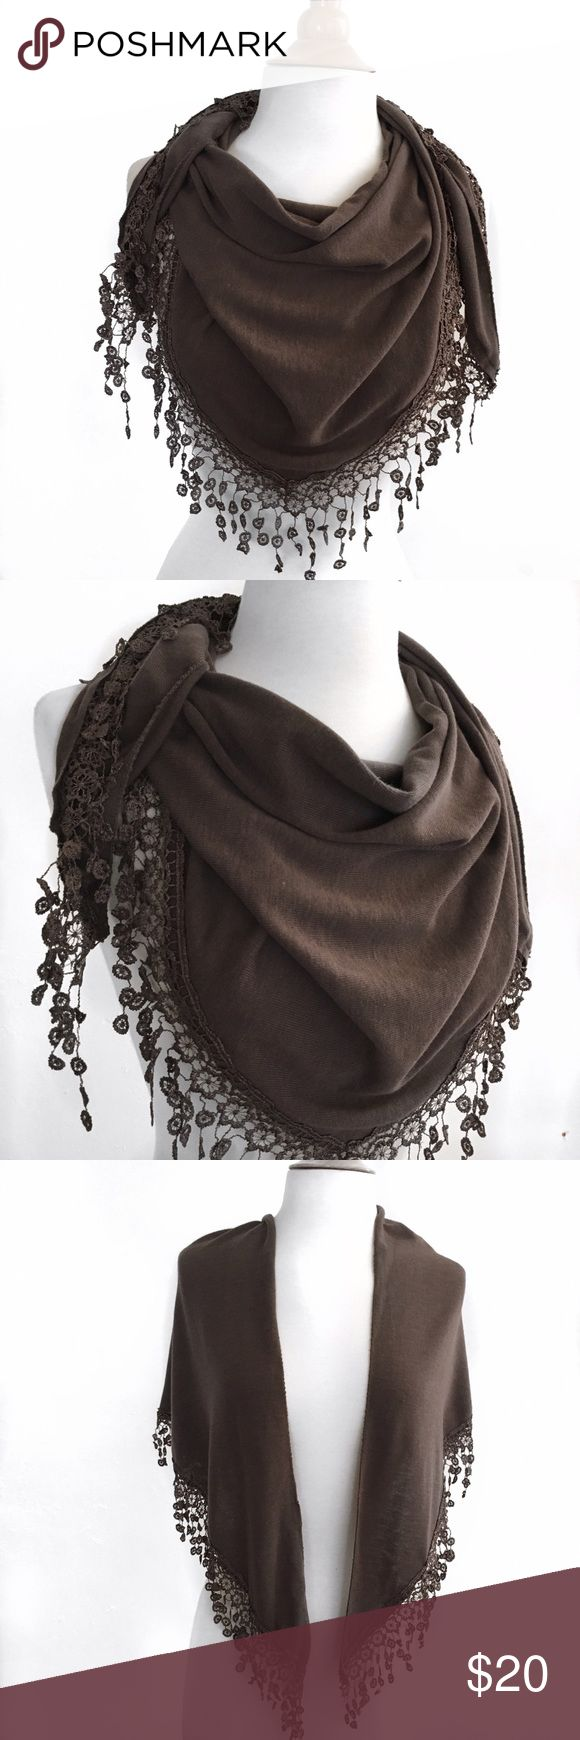 Bandana Lace Scarf Triangle cut  Lace around hem Taupe  Made in Italy  70% Cotton 30% Silk  Size Medium   Condition: No stains, wear or tear.   ​☑️​No Pets  ​☑️​Non-Smoking home  ​☑️​Every item steamed throughly before shipped!  ​💌​ Ships from Santa Monica, CA  ​🗝​Follow me on Instagram! @koukil1908 ask to have a video of the item ​✌️ Accessories Scarves & Wraps